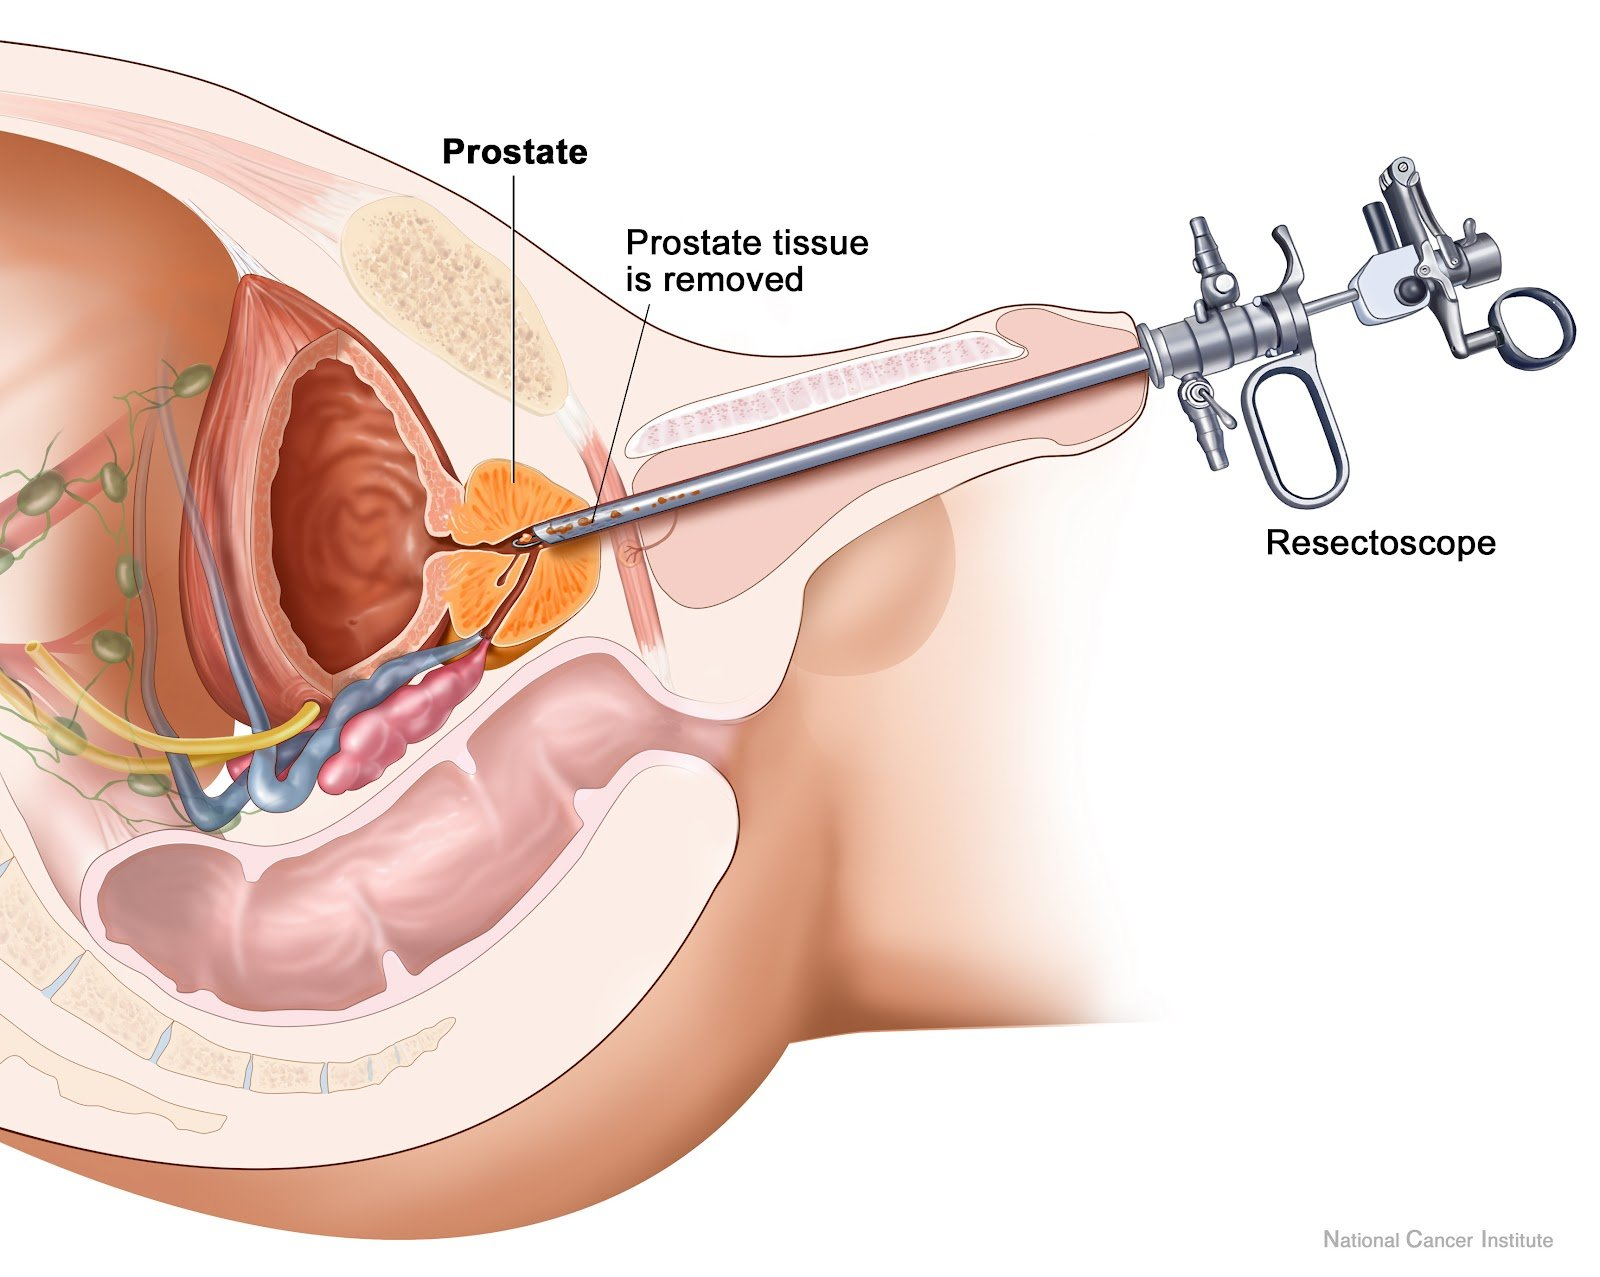 Transurethral resection of the prostate in saline (TURis)